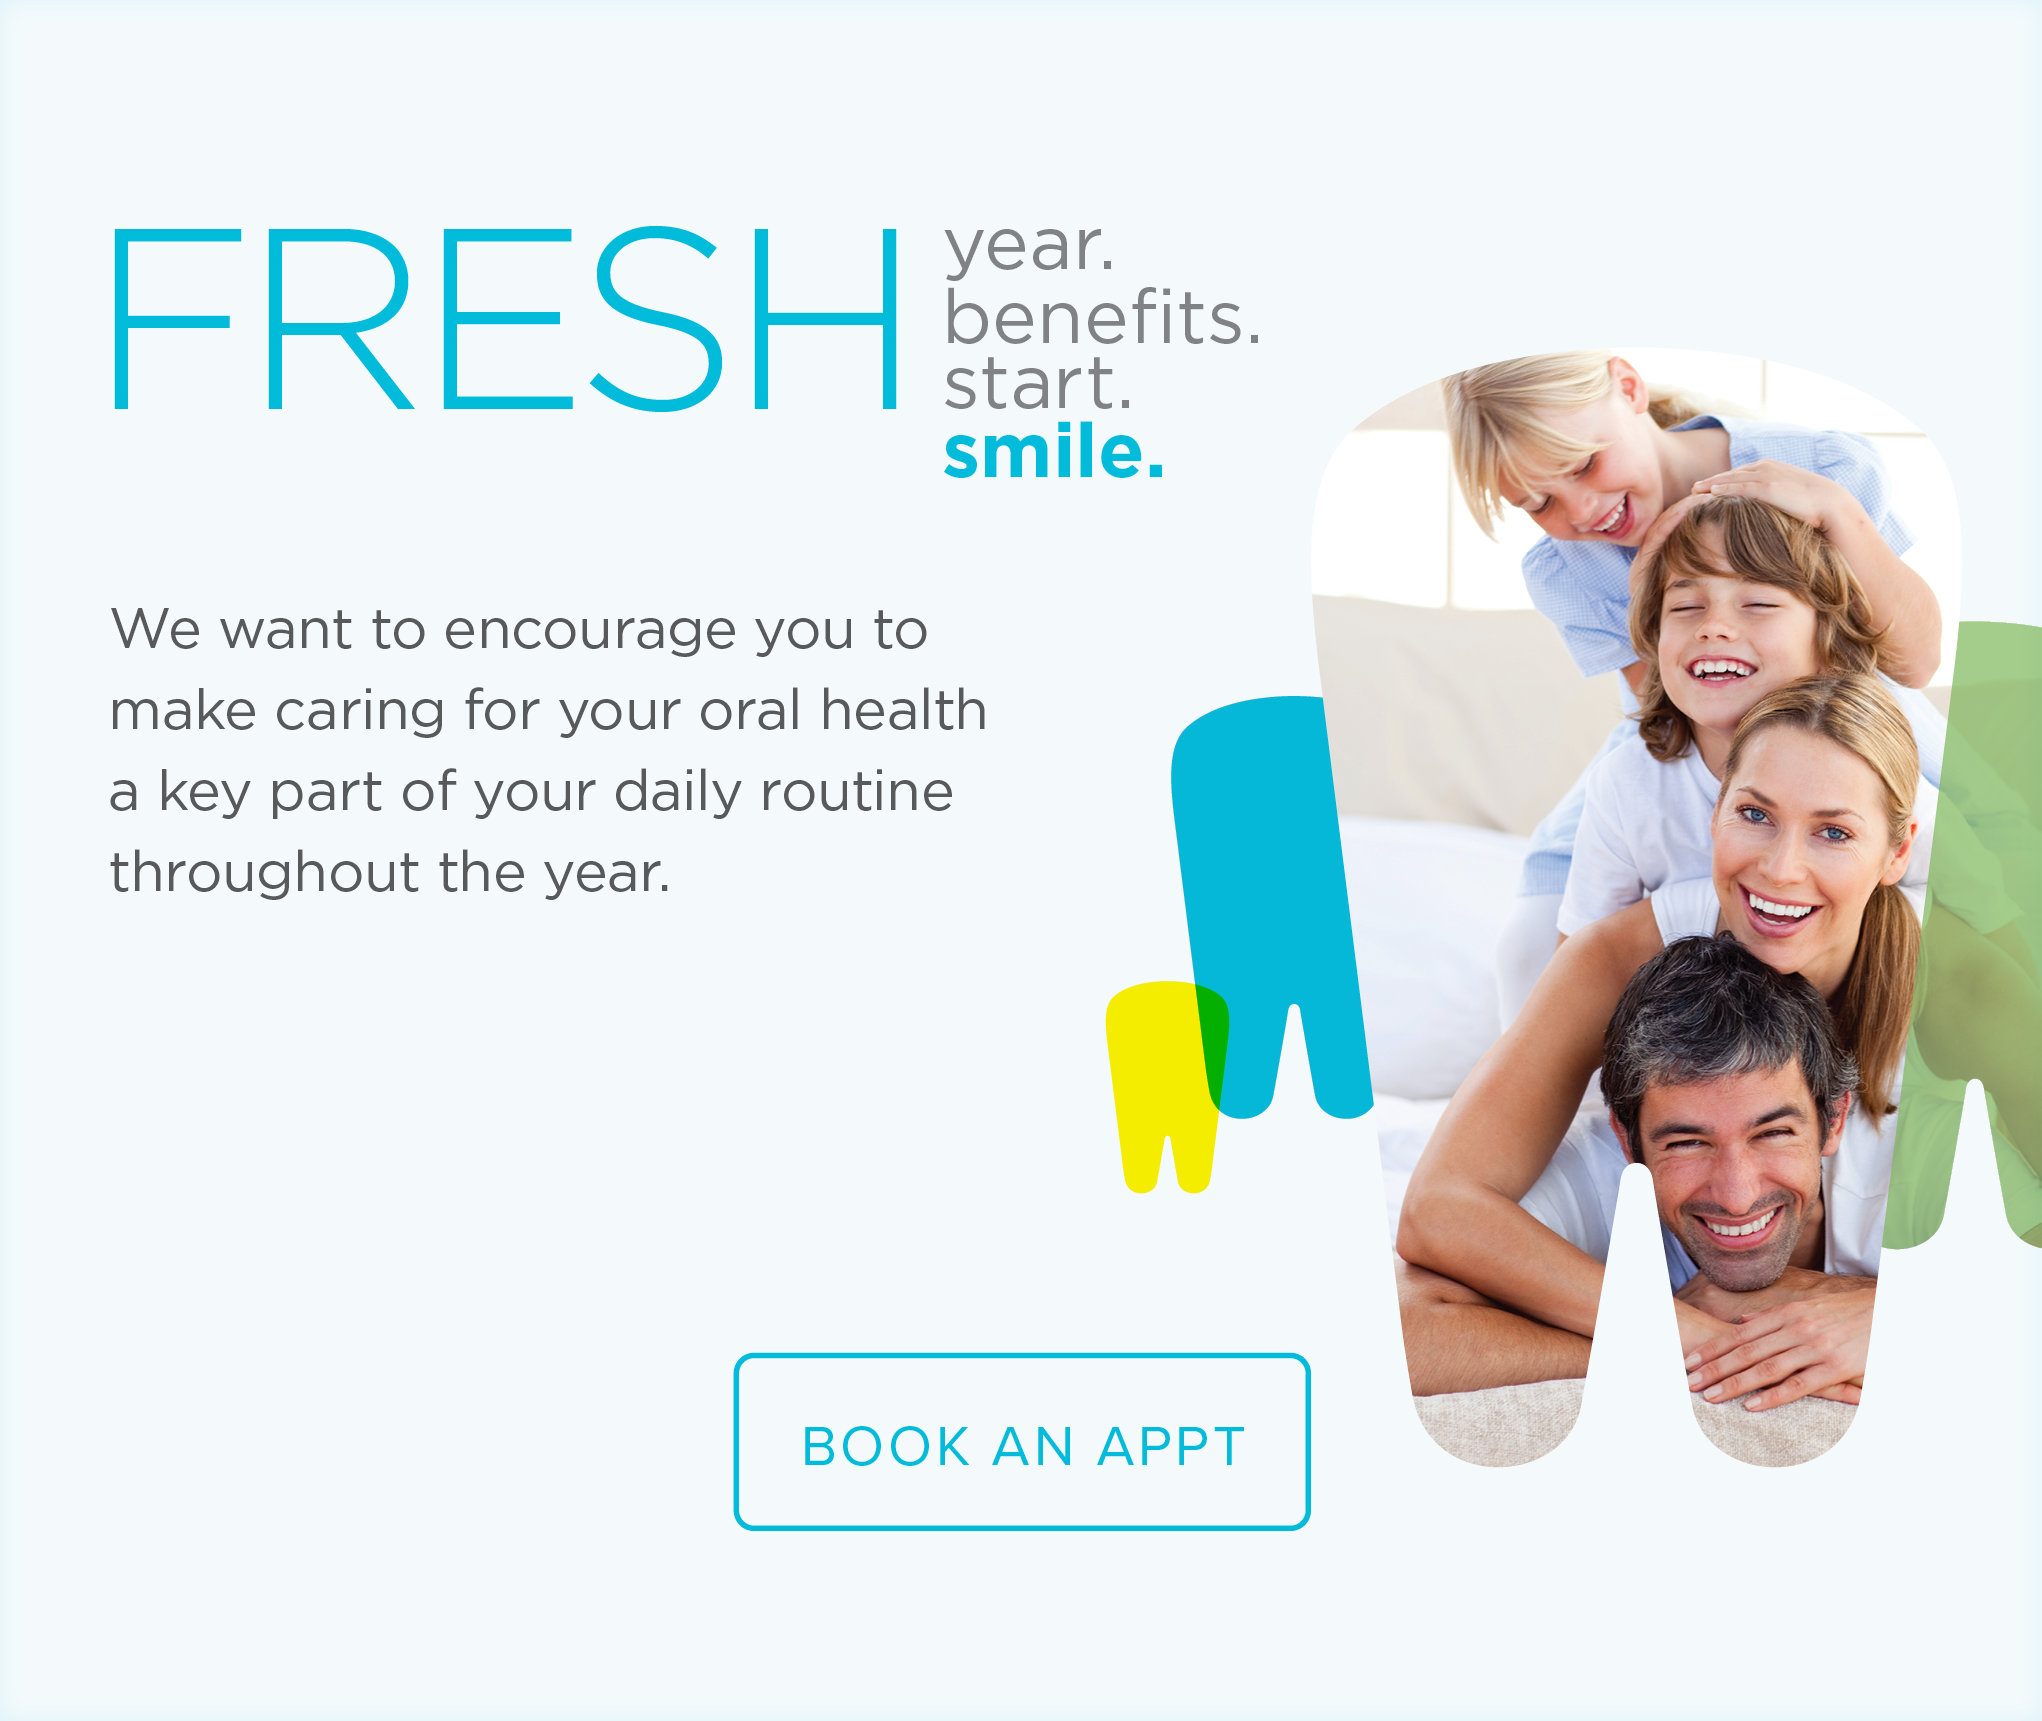 Broadway Smiles Dentistry and Orthodontics - Make the Most of Your Benefits